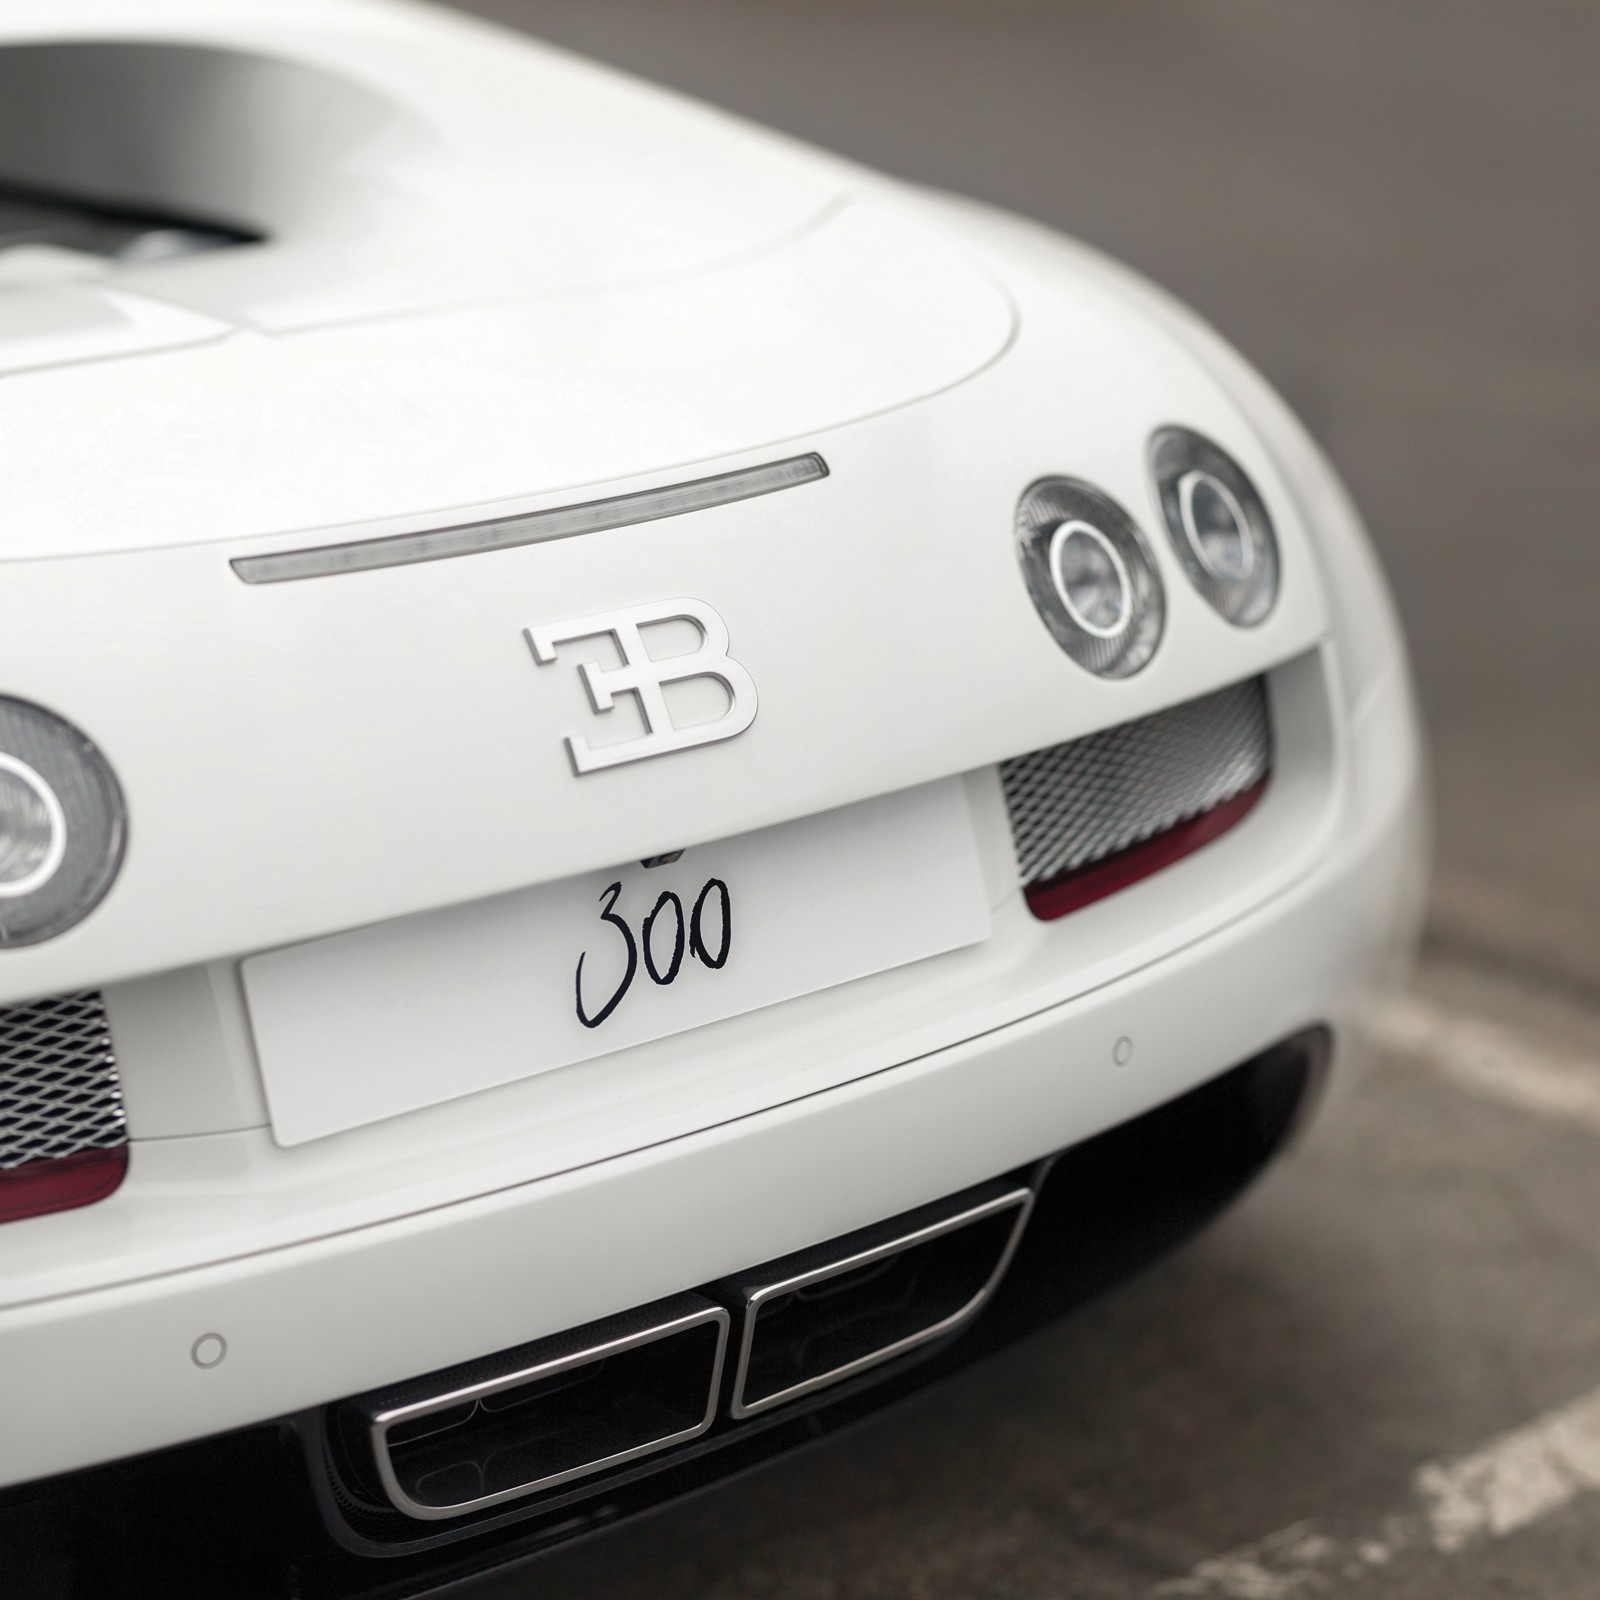 nows-your-chance-to-buy-yourself-the-final-bugatti-veyron-coupe-ever-made_9 Fascinating Bugatti Veyron Grand Sport Vitesse 1/4 Mile Cars Trend